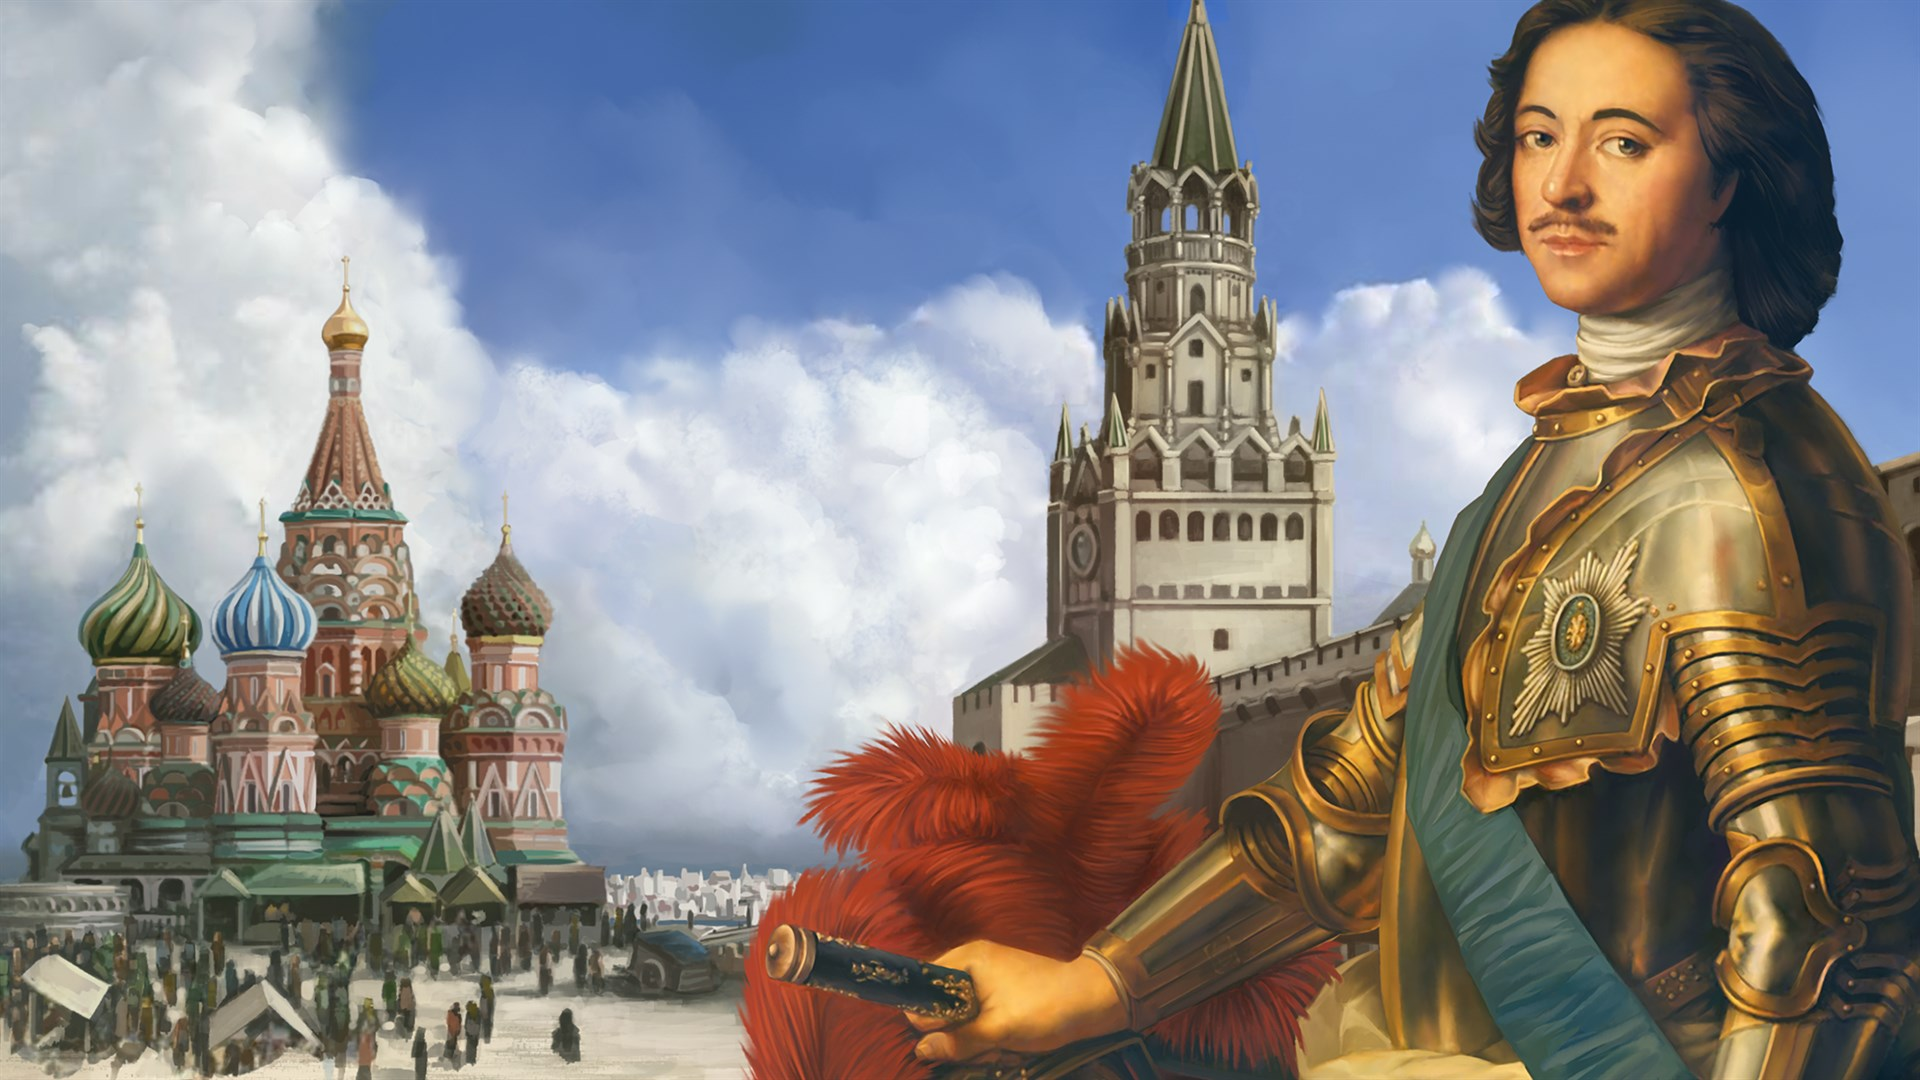 Europa Universalis IV: Third Rome Immersion Pack